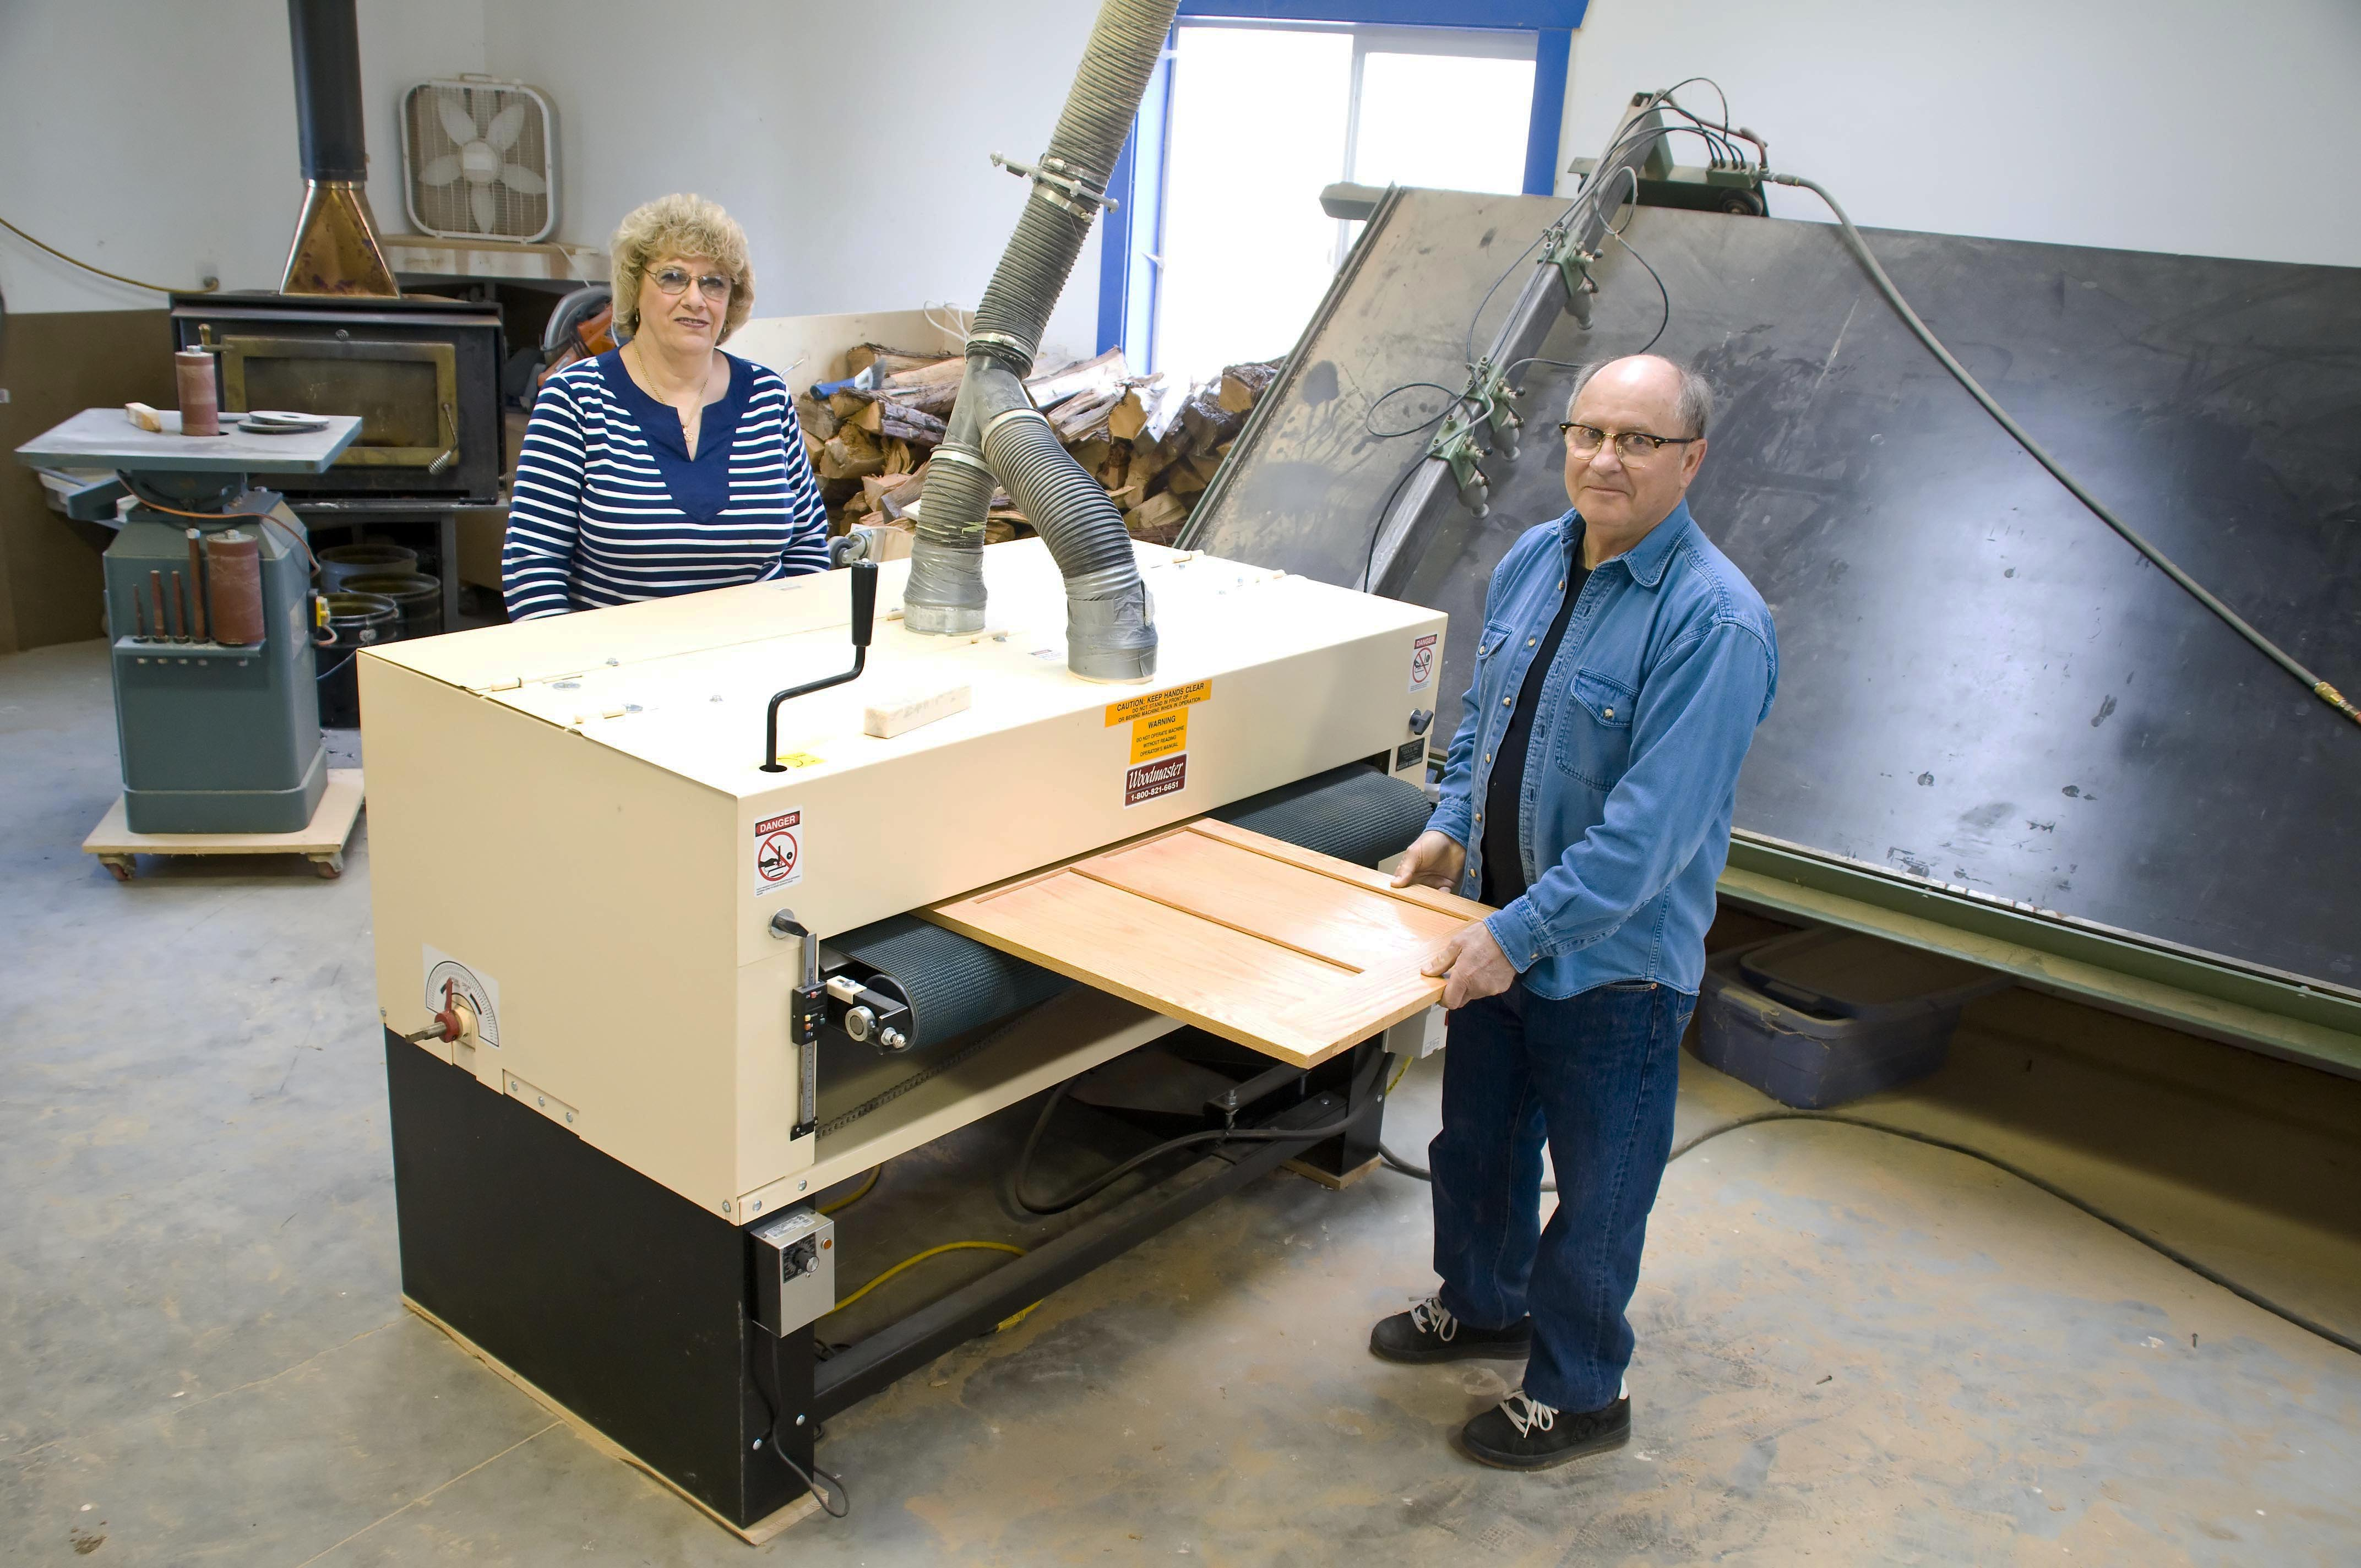 ... our DRUM SANDER PHOTO CONTEST! — Woodmaster Drum Sander Owners ONLY